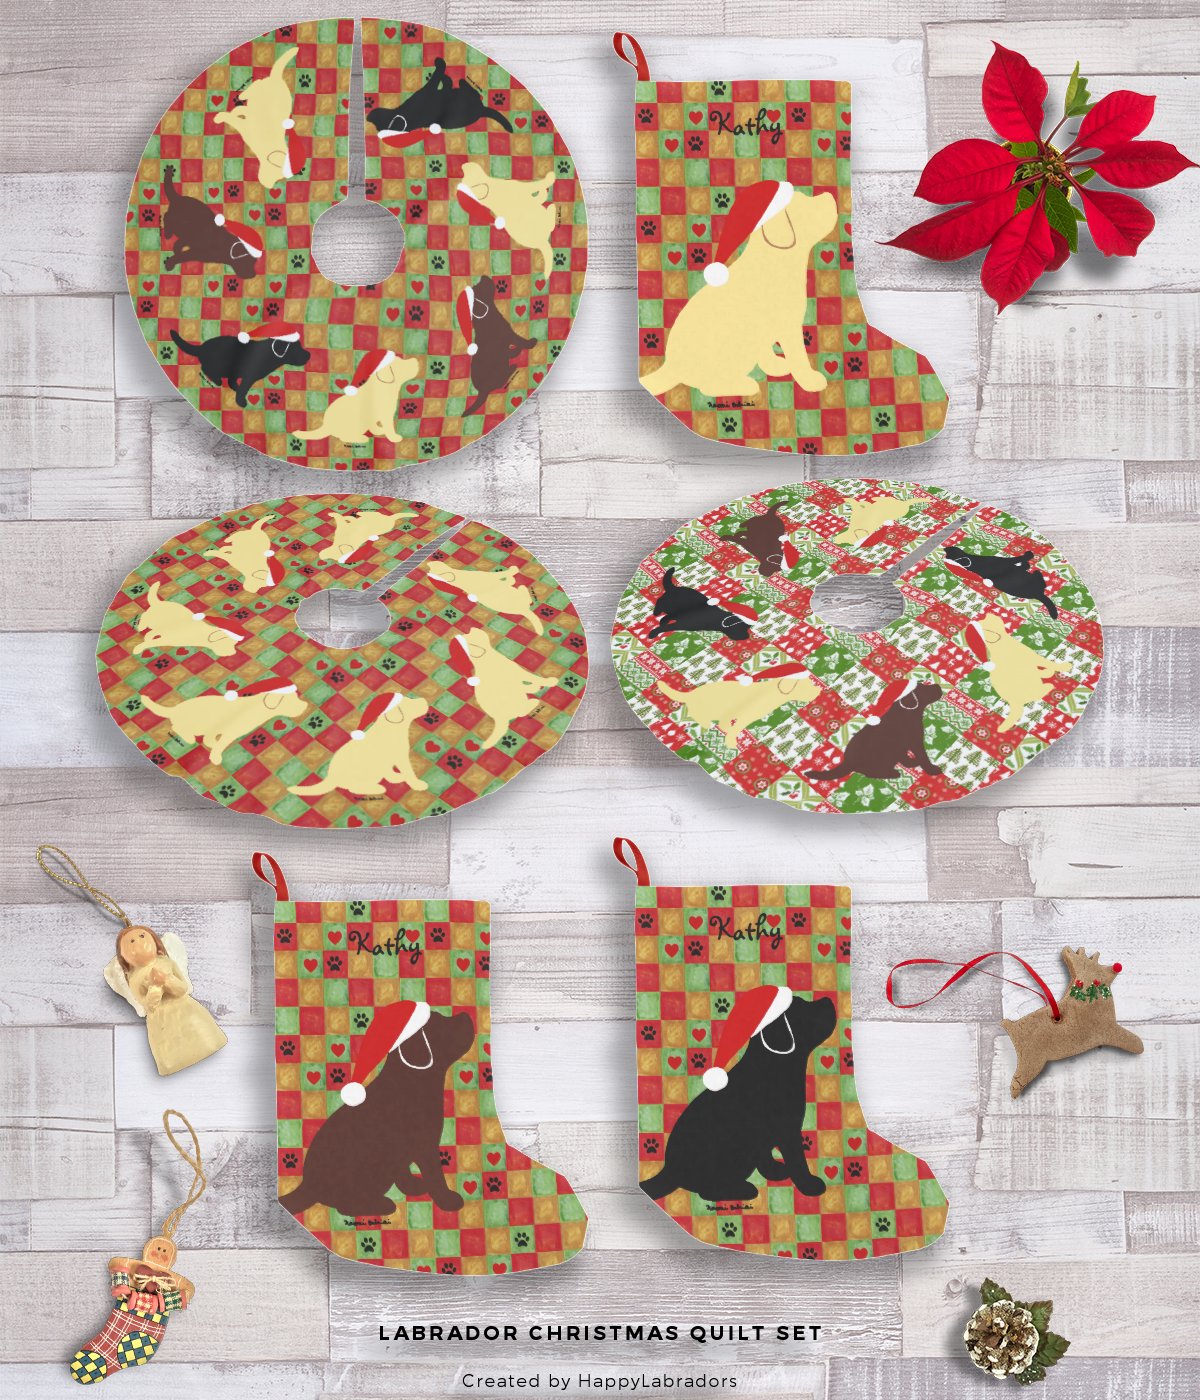 Labrador Christmas Quilt Set Collection by HappyLabradors